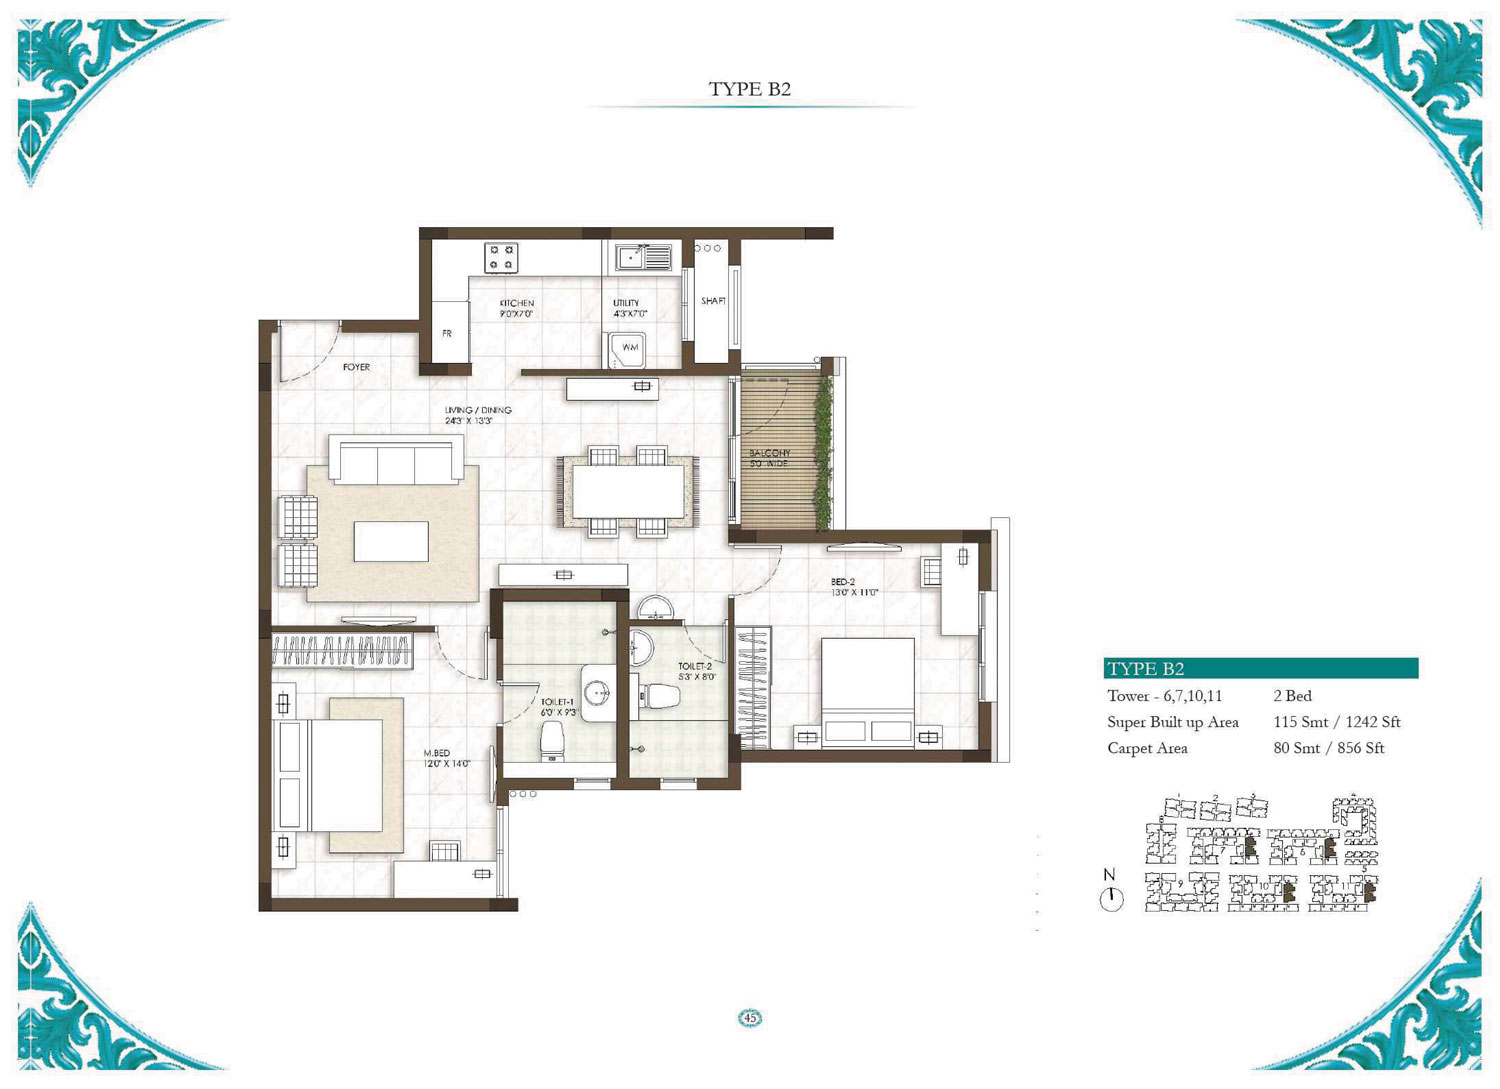 Type B2 - 1 Bed - 1242 Sq Ft